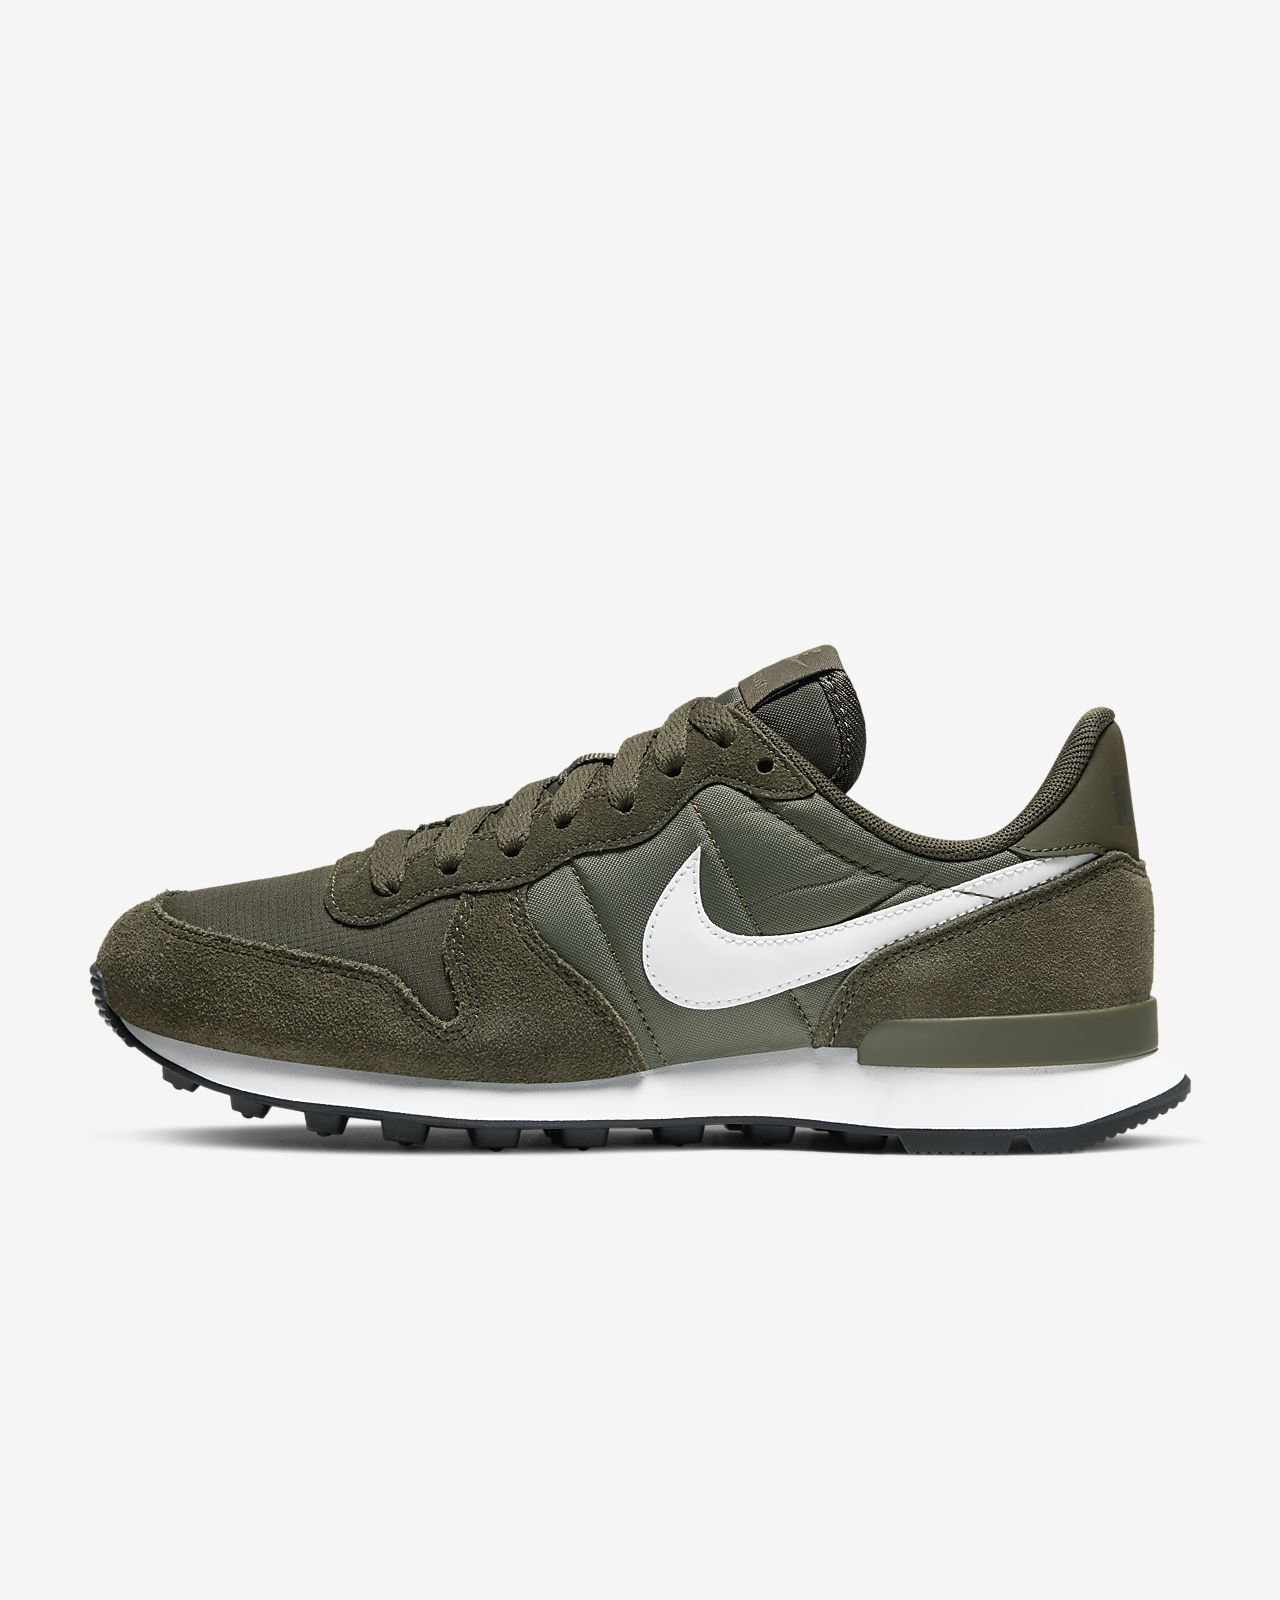 Nike Internationalist Lifestyle Schuhe, Nike